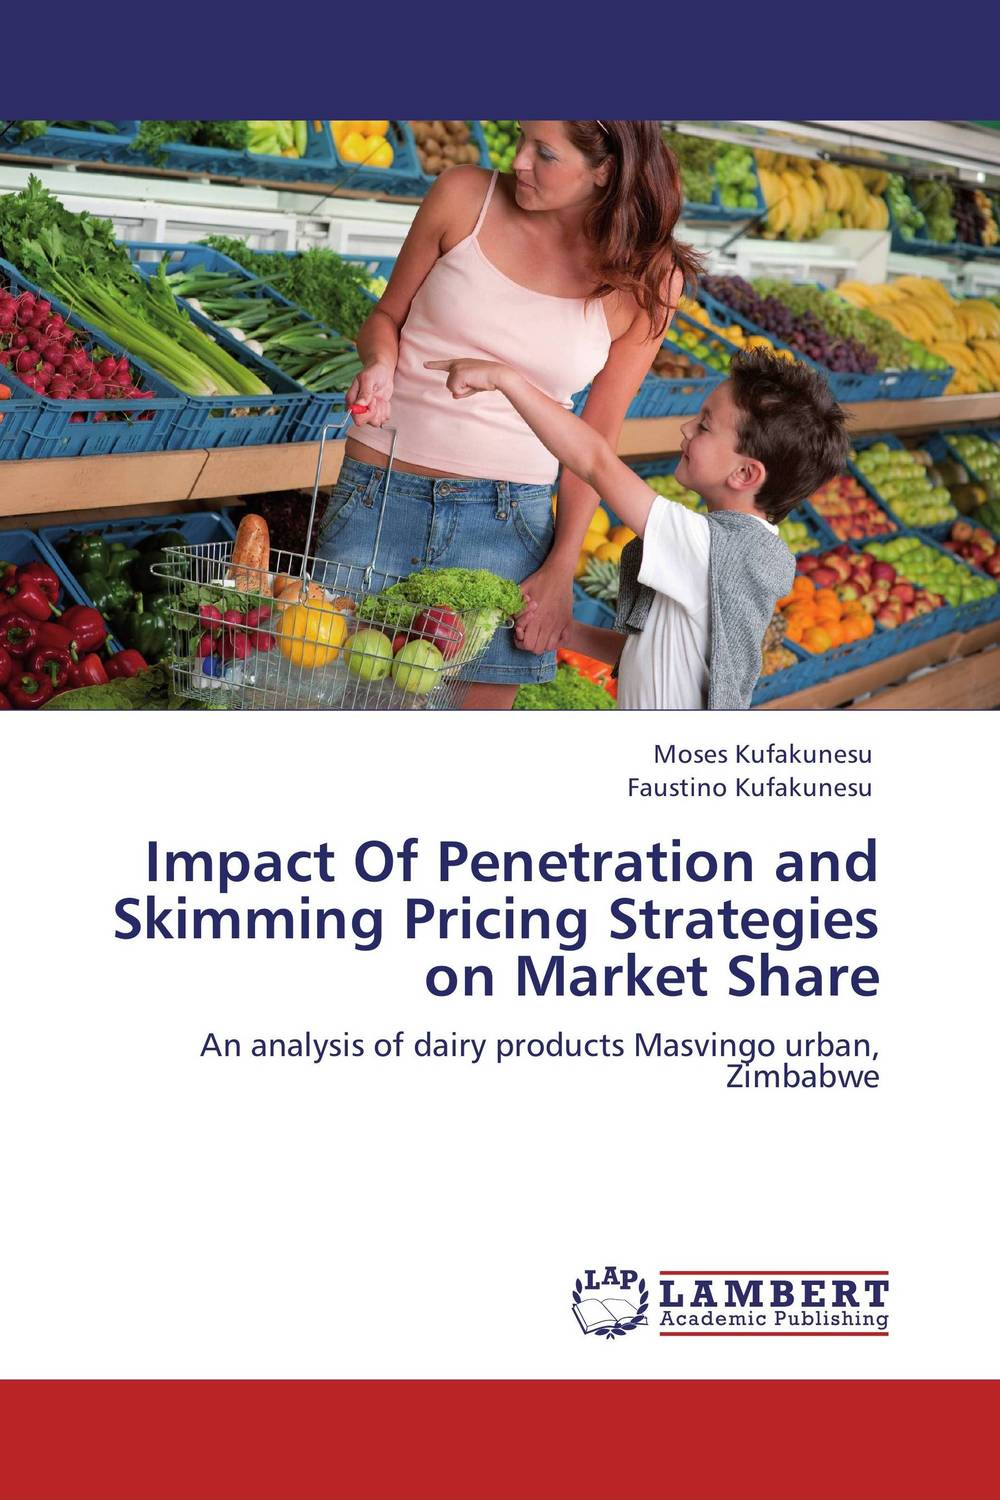 Impact Of Penetration and Skimming Pricing Strategies on Market Share